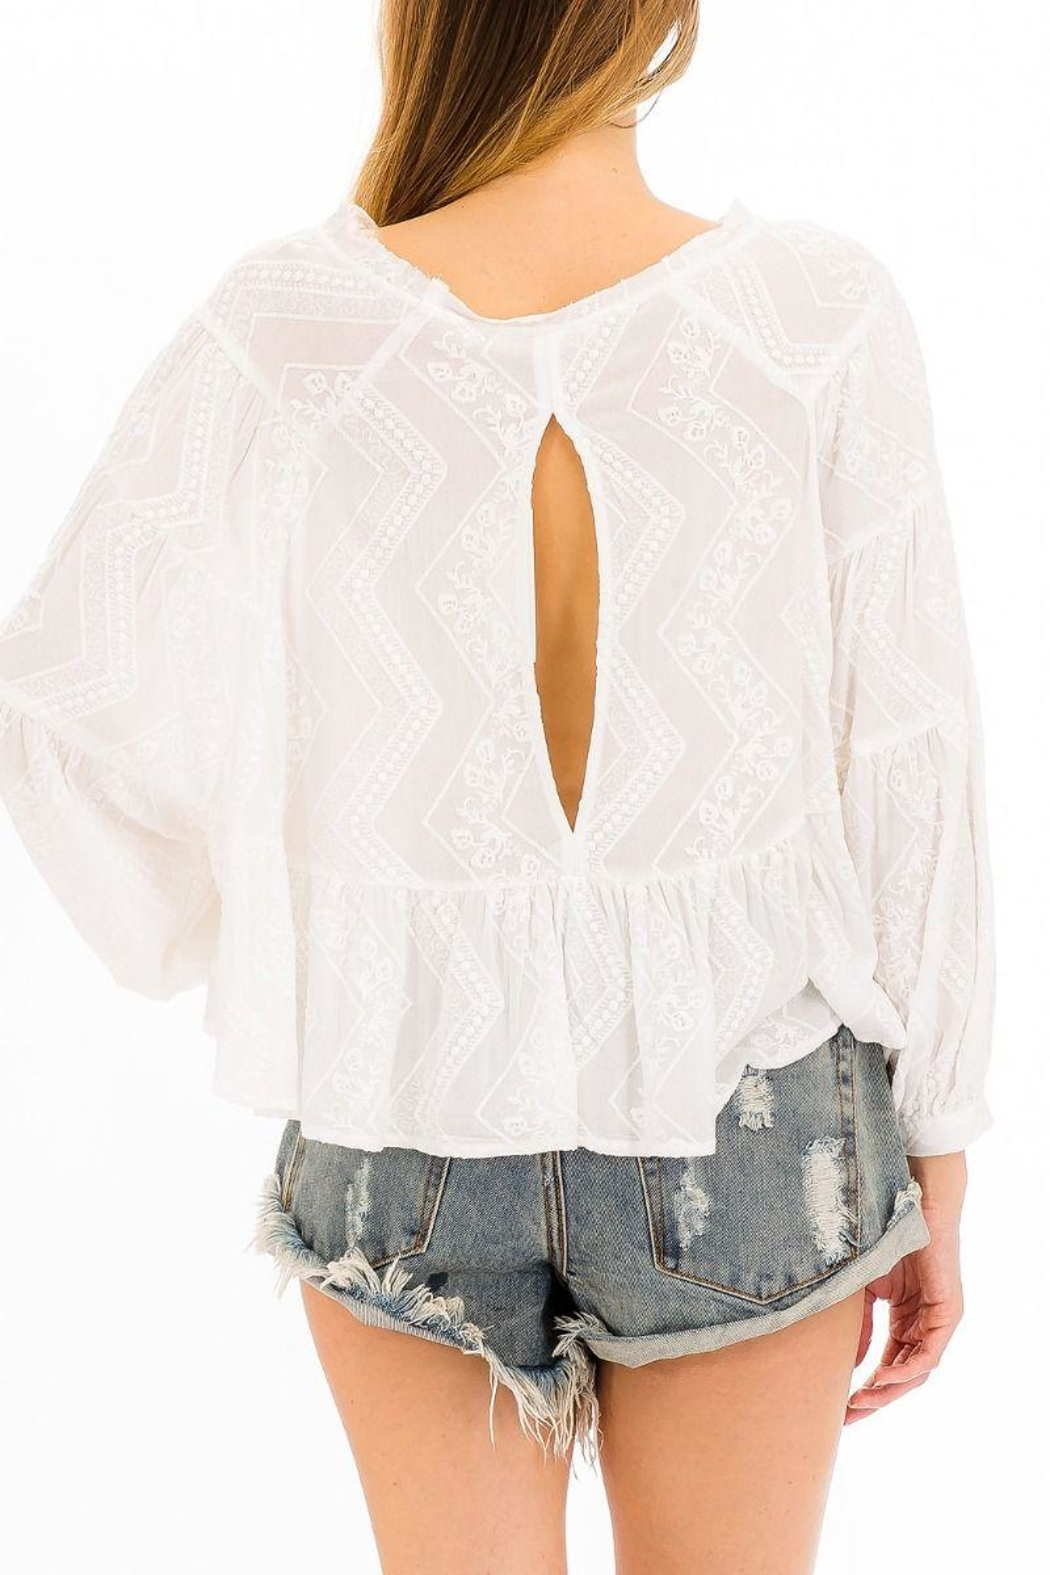 Olivaceous Embroidered White Top - Front Cropped Image